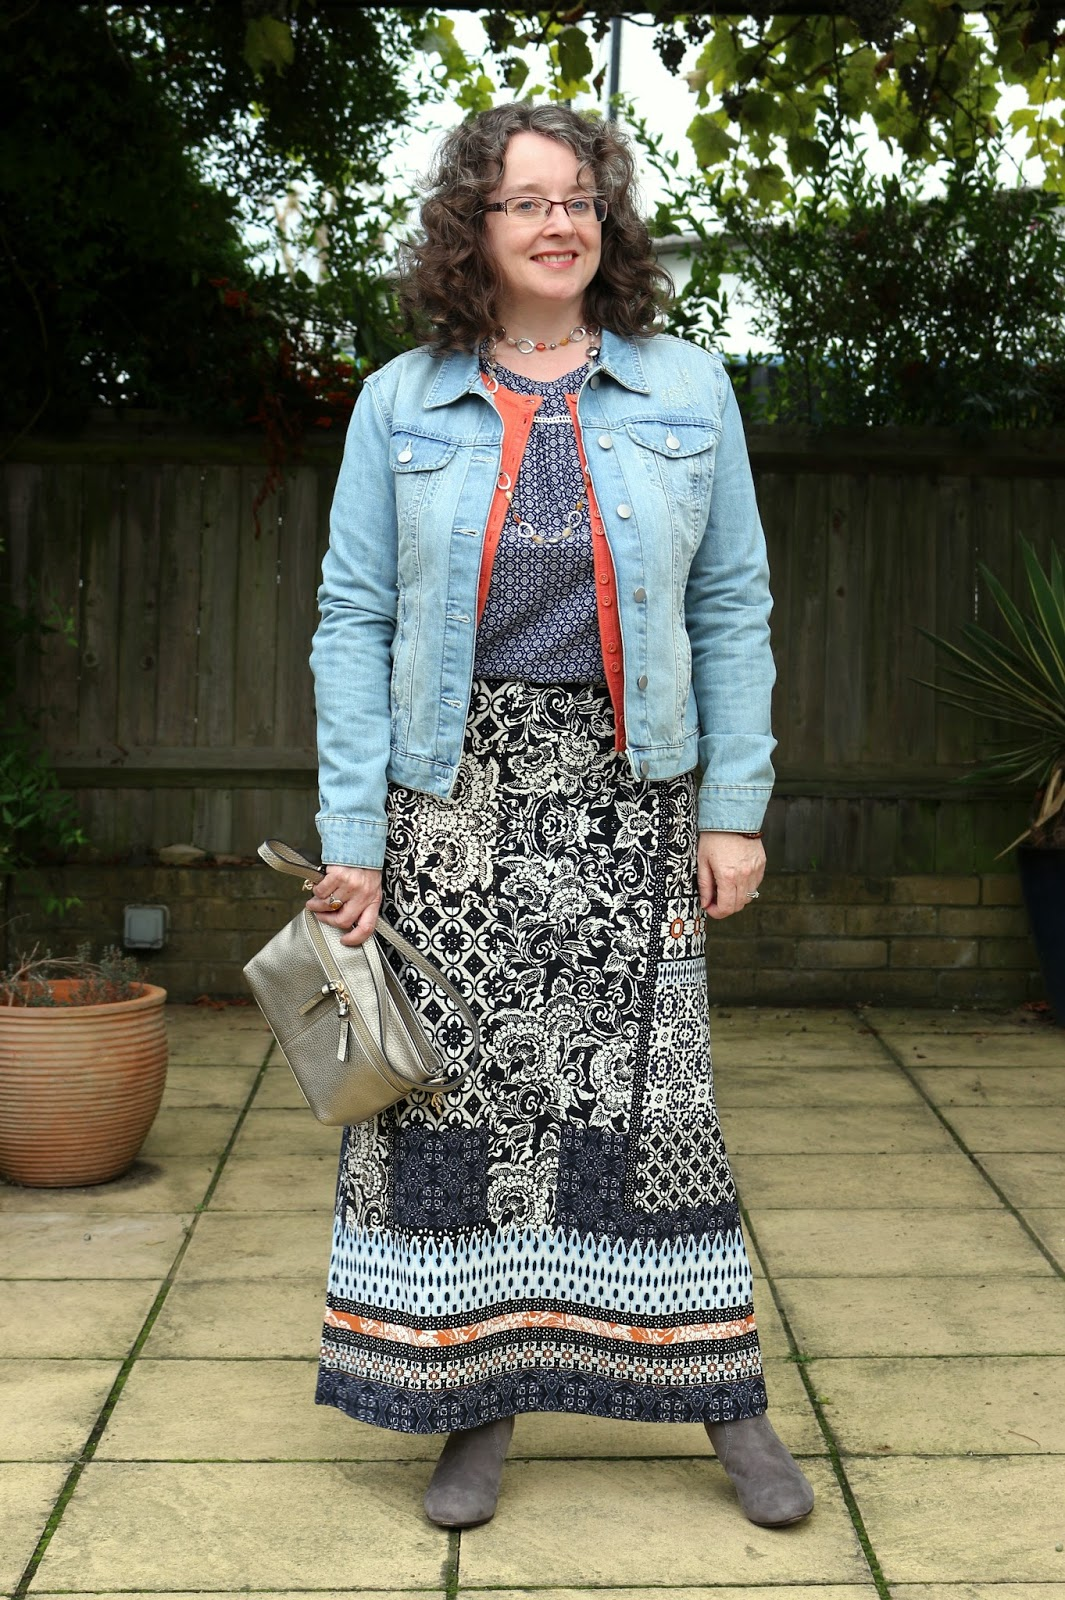 How to style your maxi skirt for Autumn, Denim Jacket & Pattern Mixing | Petite Silver Vixen